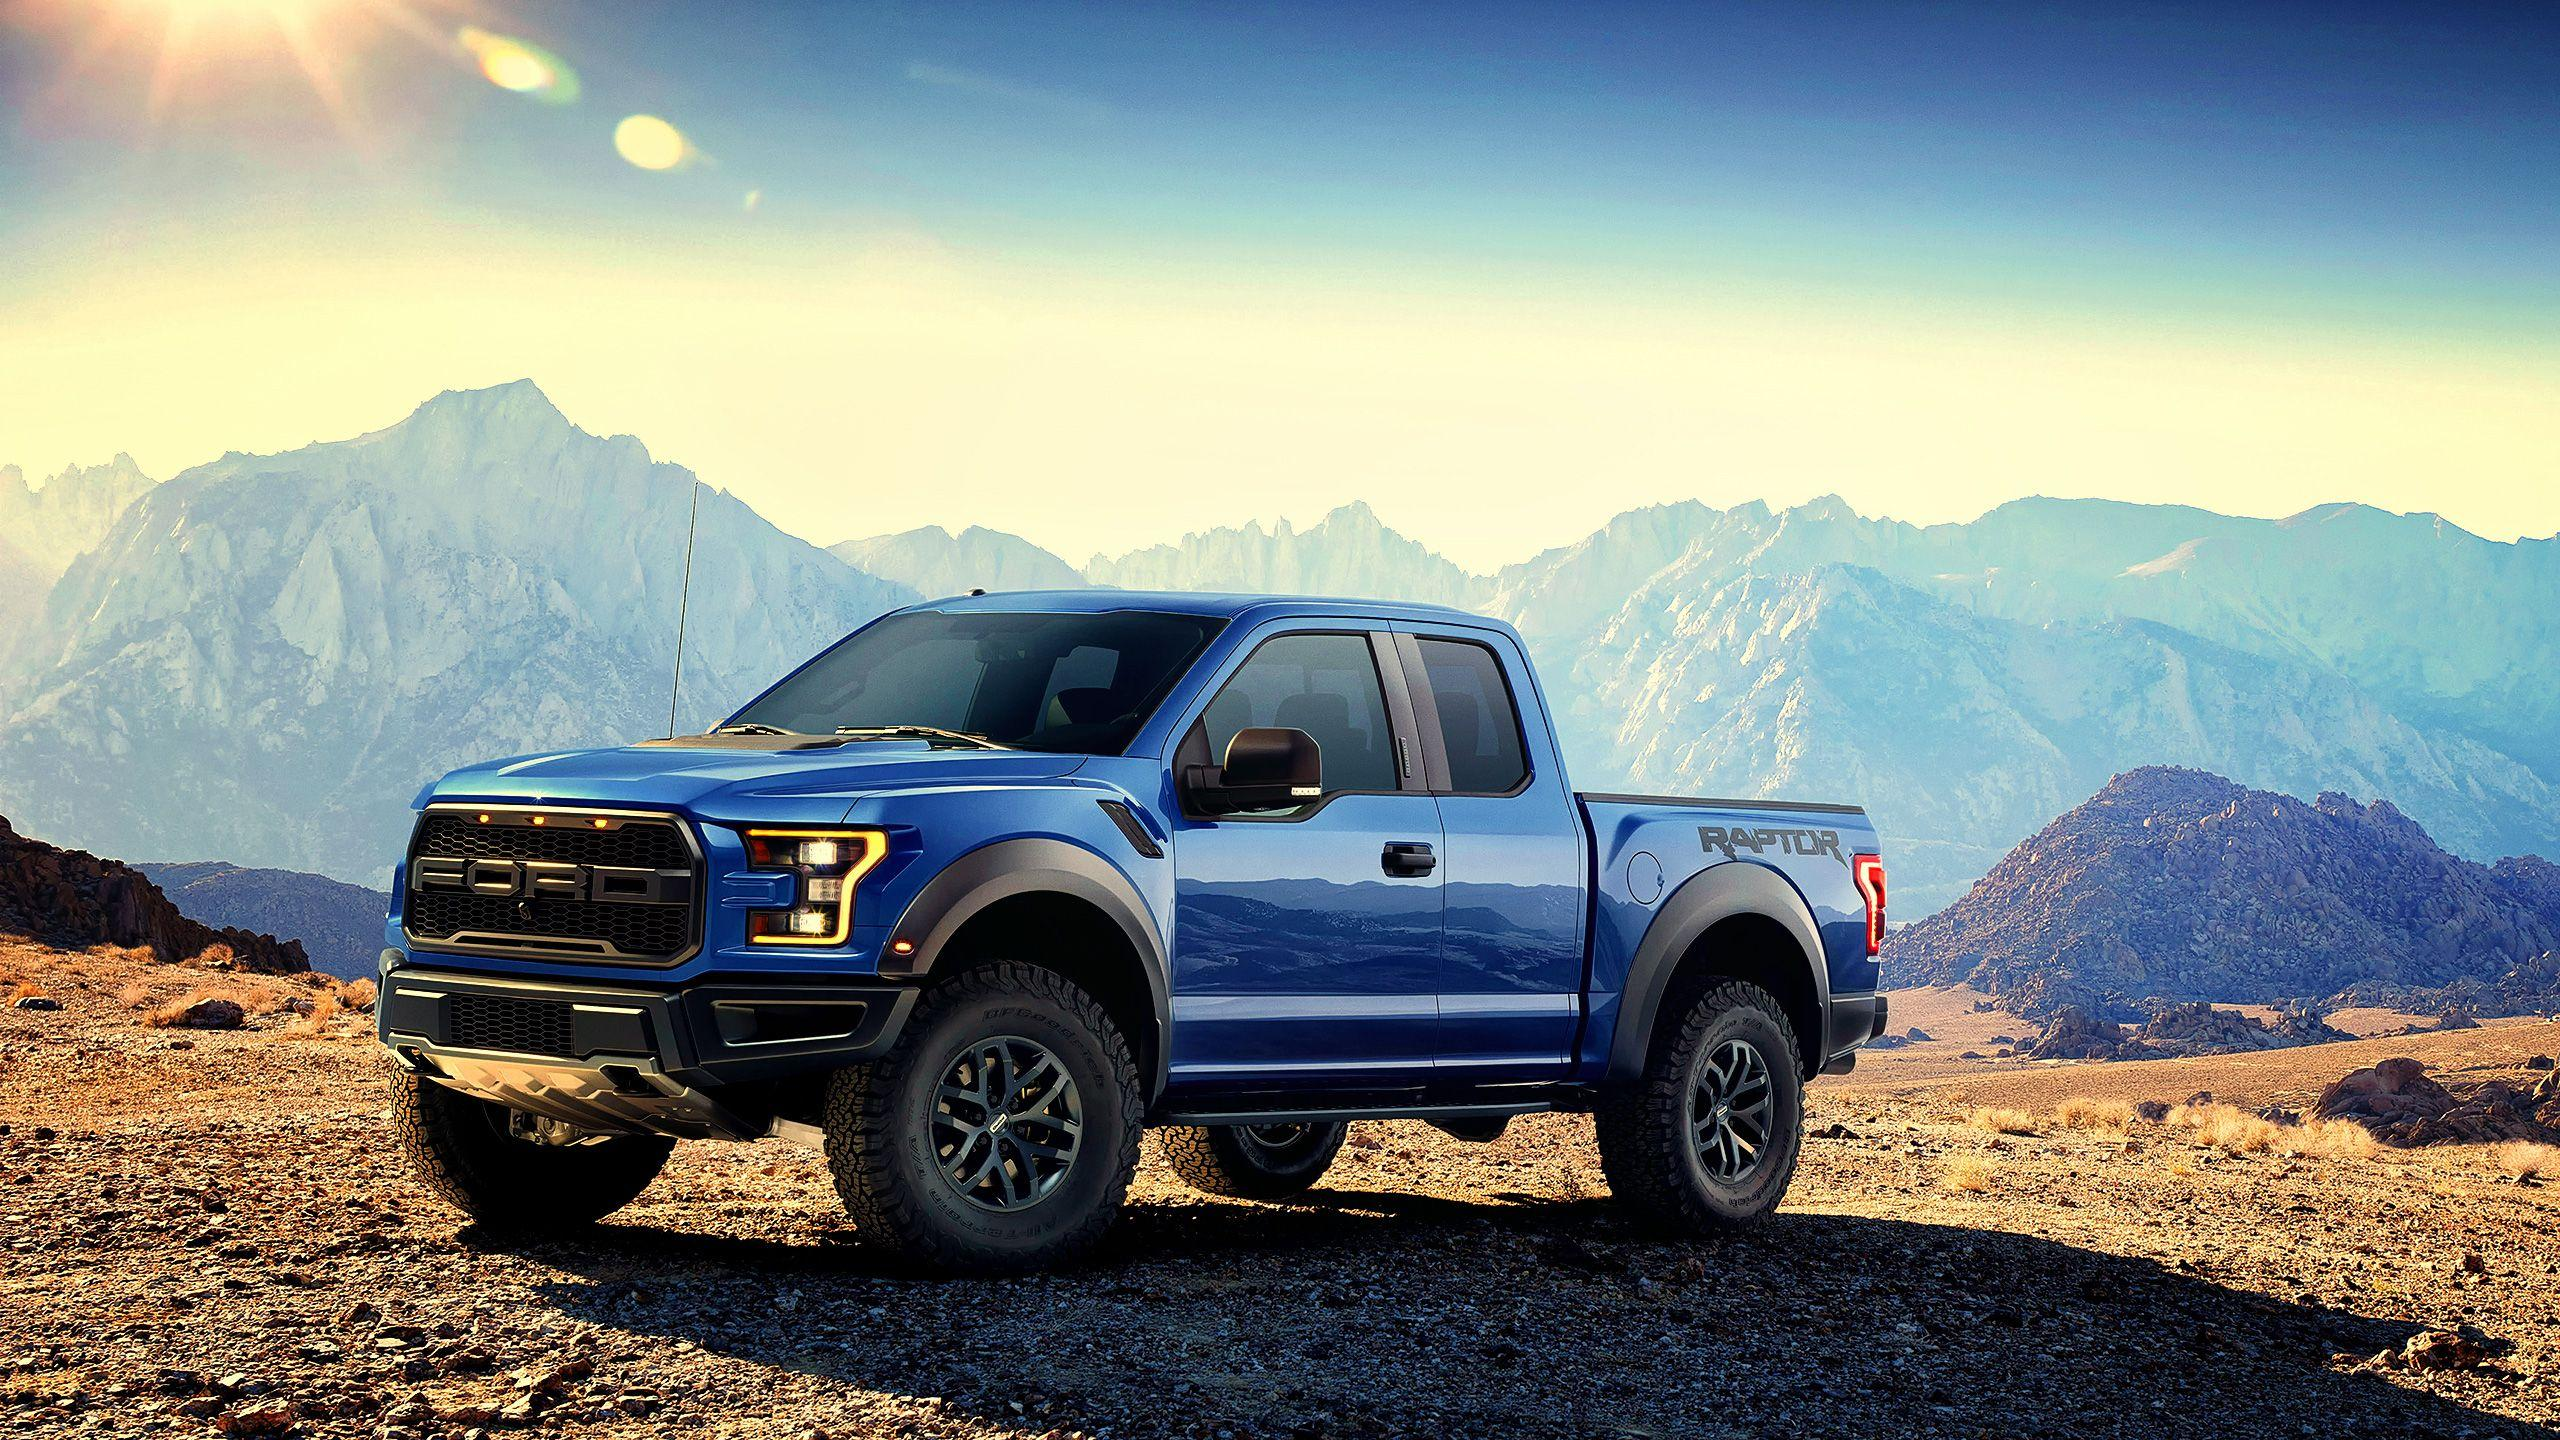 2017 Ford F 150 SVT Raptor Wallpaper | HD Car Wallpapers | ID #7111